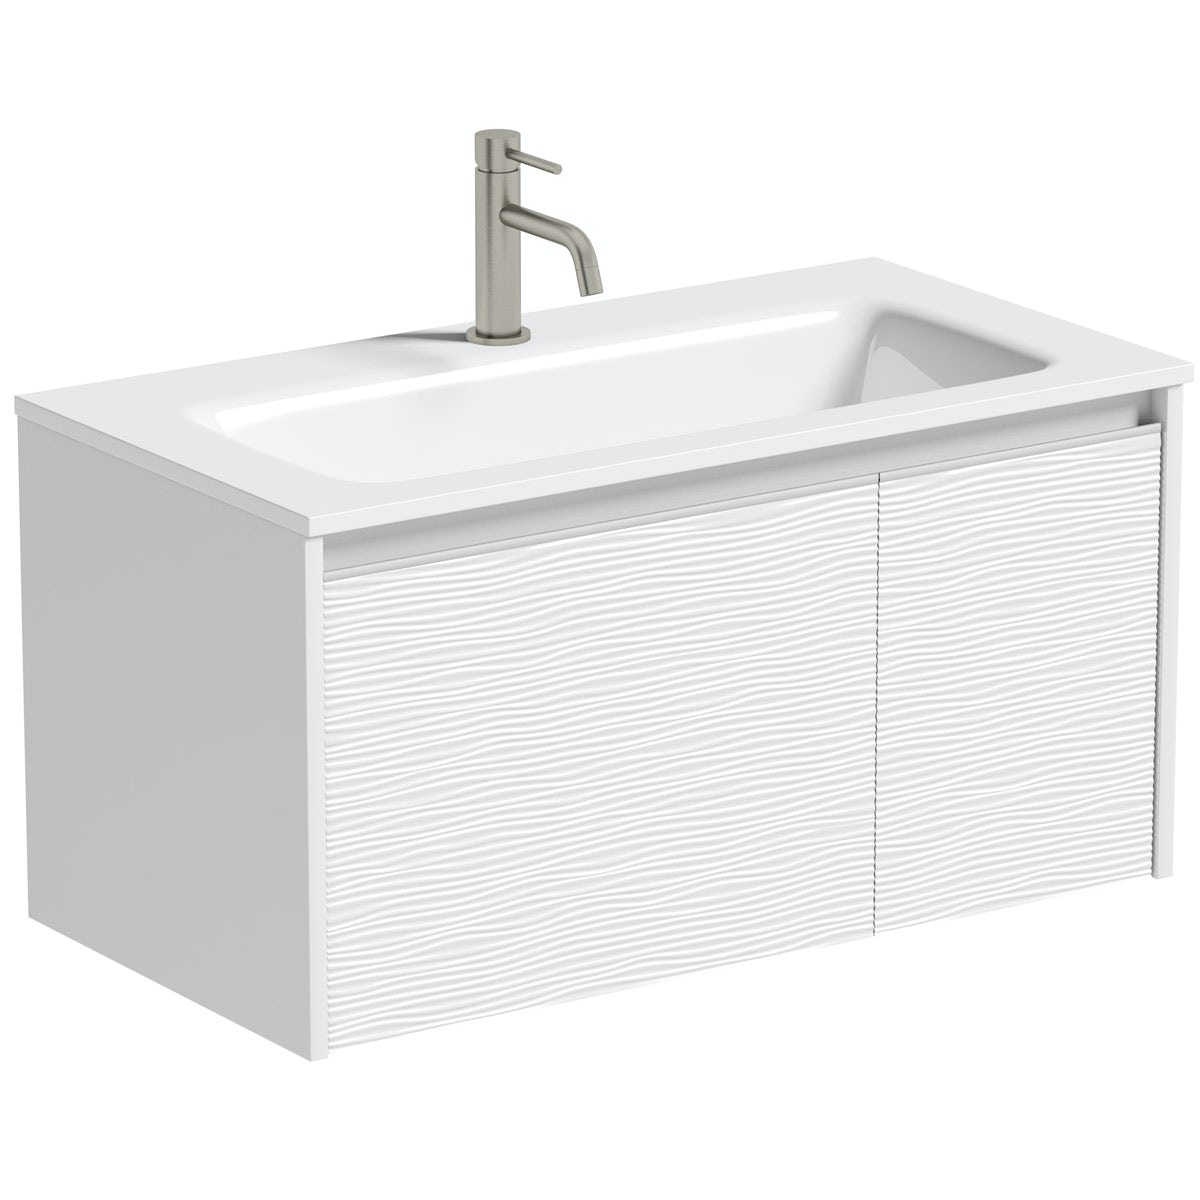 Mode Banks textured matt white wall hung vanity unit 800mm